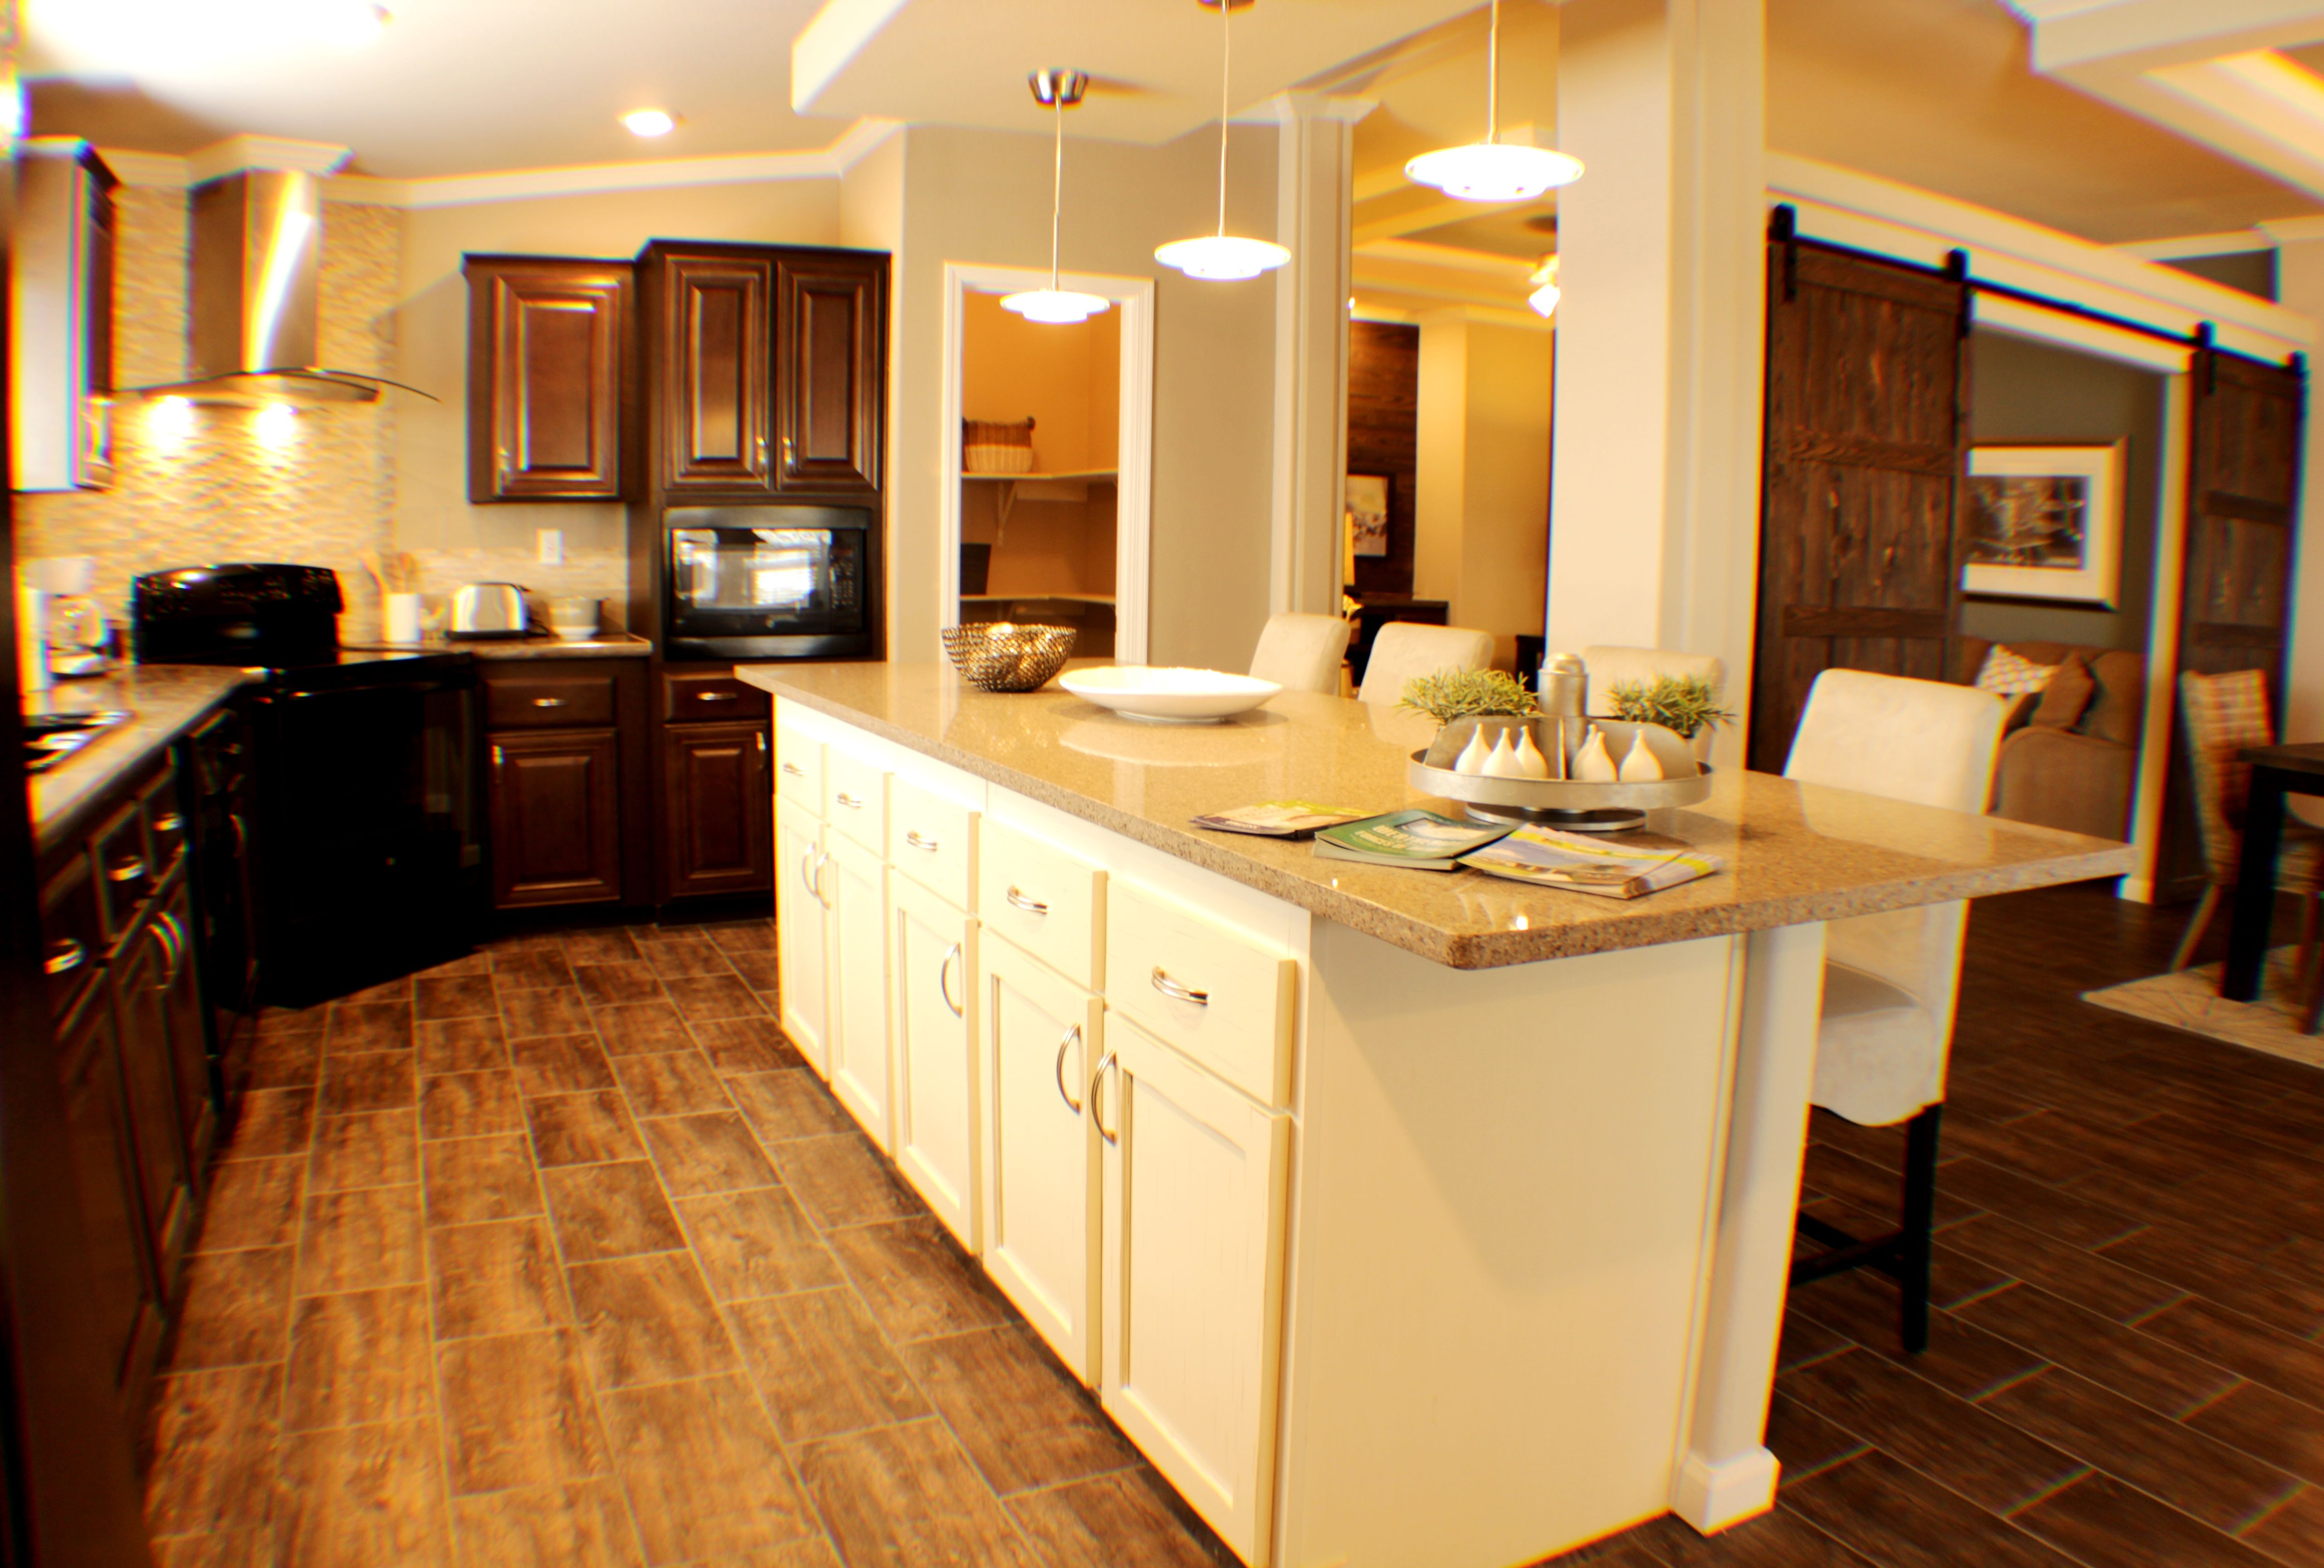 Kitchen Islands, Quality Low Priced Modular Homes & Mobile ... on